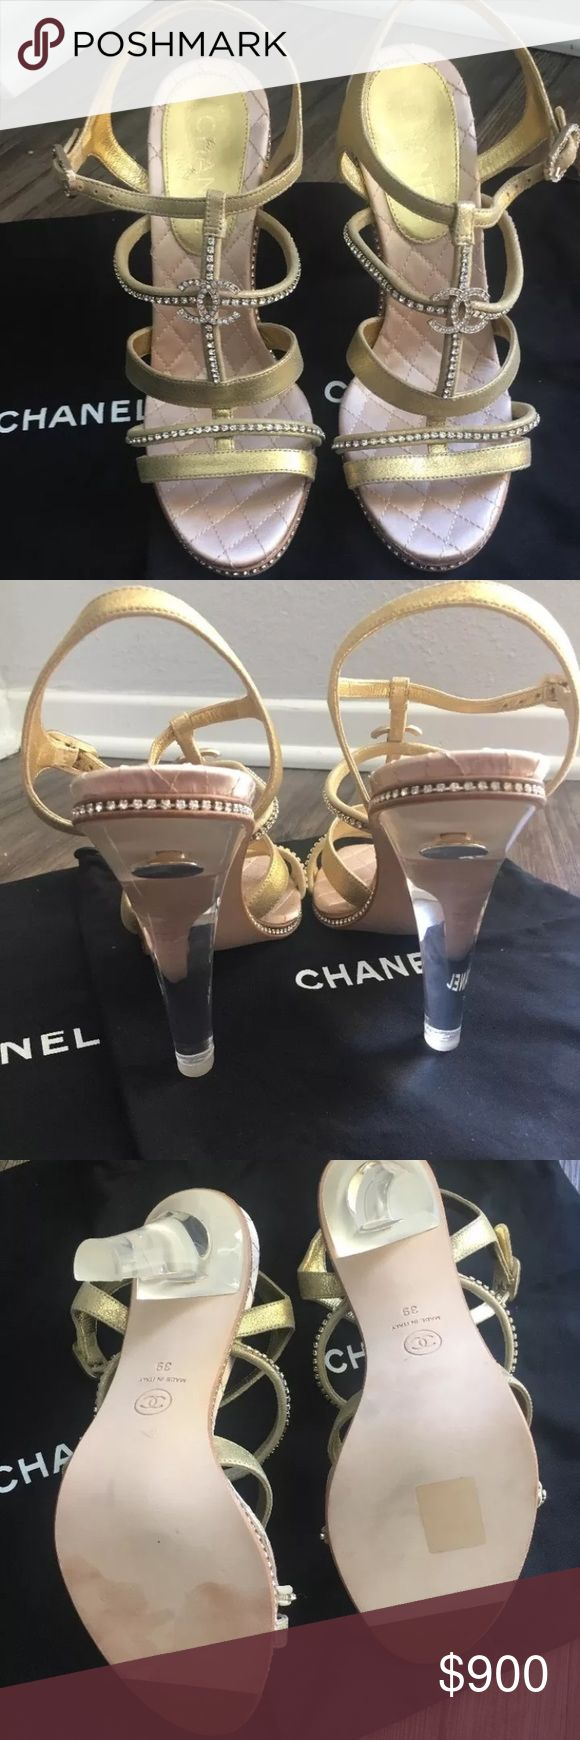 Chanel Lucite and Crystal Heels Unfortunately a little too tight on me. Never worn! From the 2014 collection. Comes with dustbag CHANEL Shoes